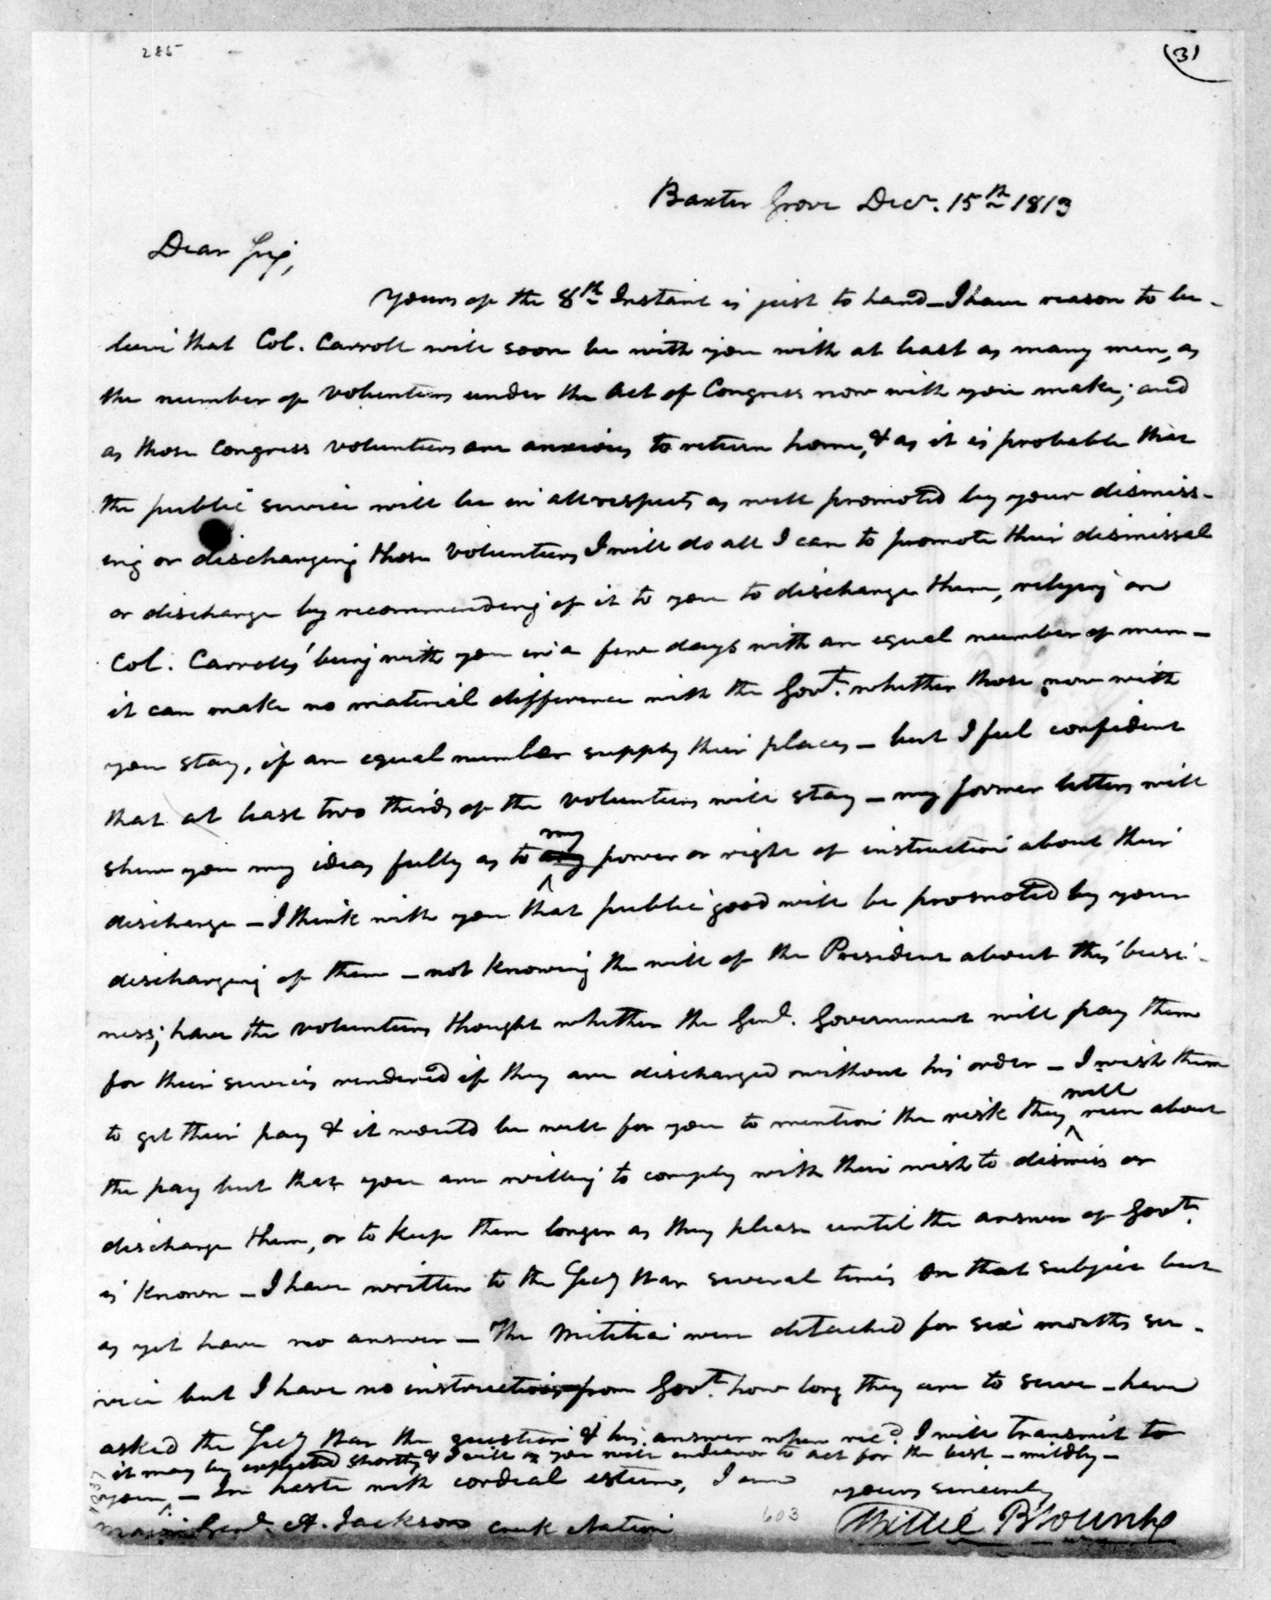 Willie Blount to Andrew Jackson, December 15, 1813